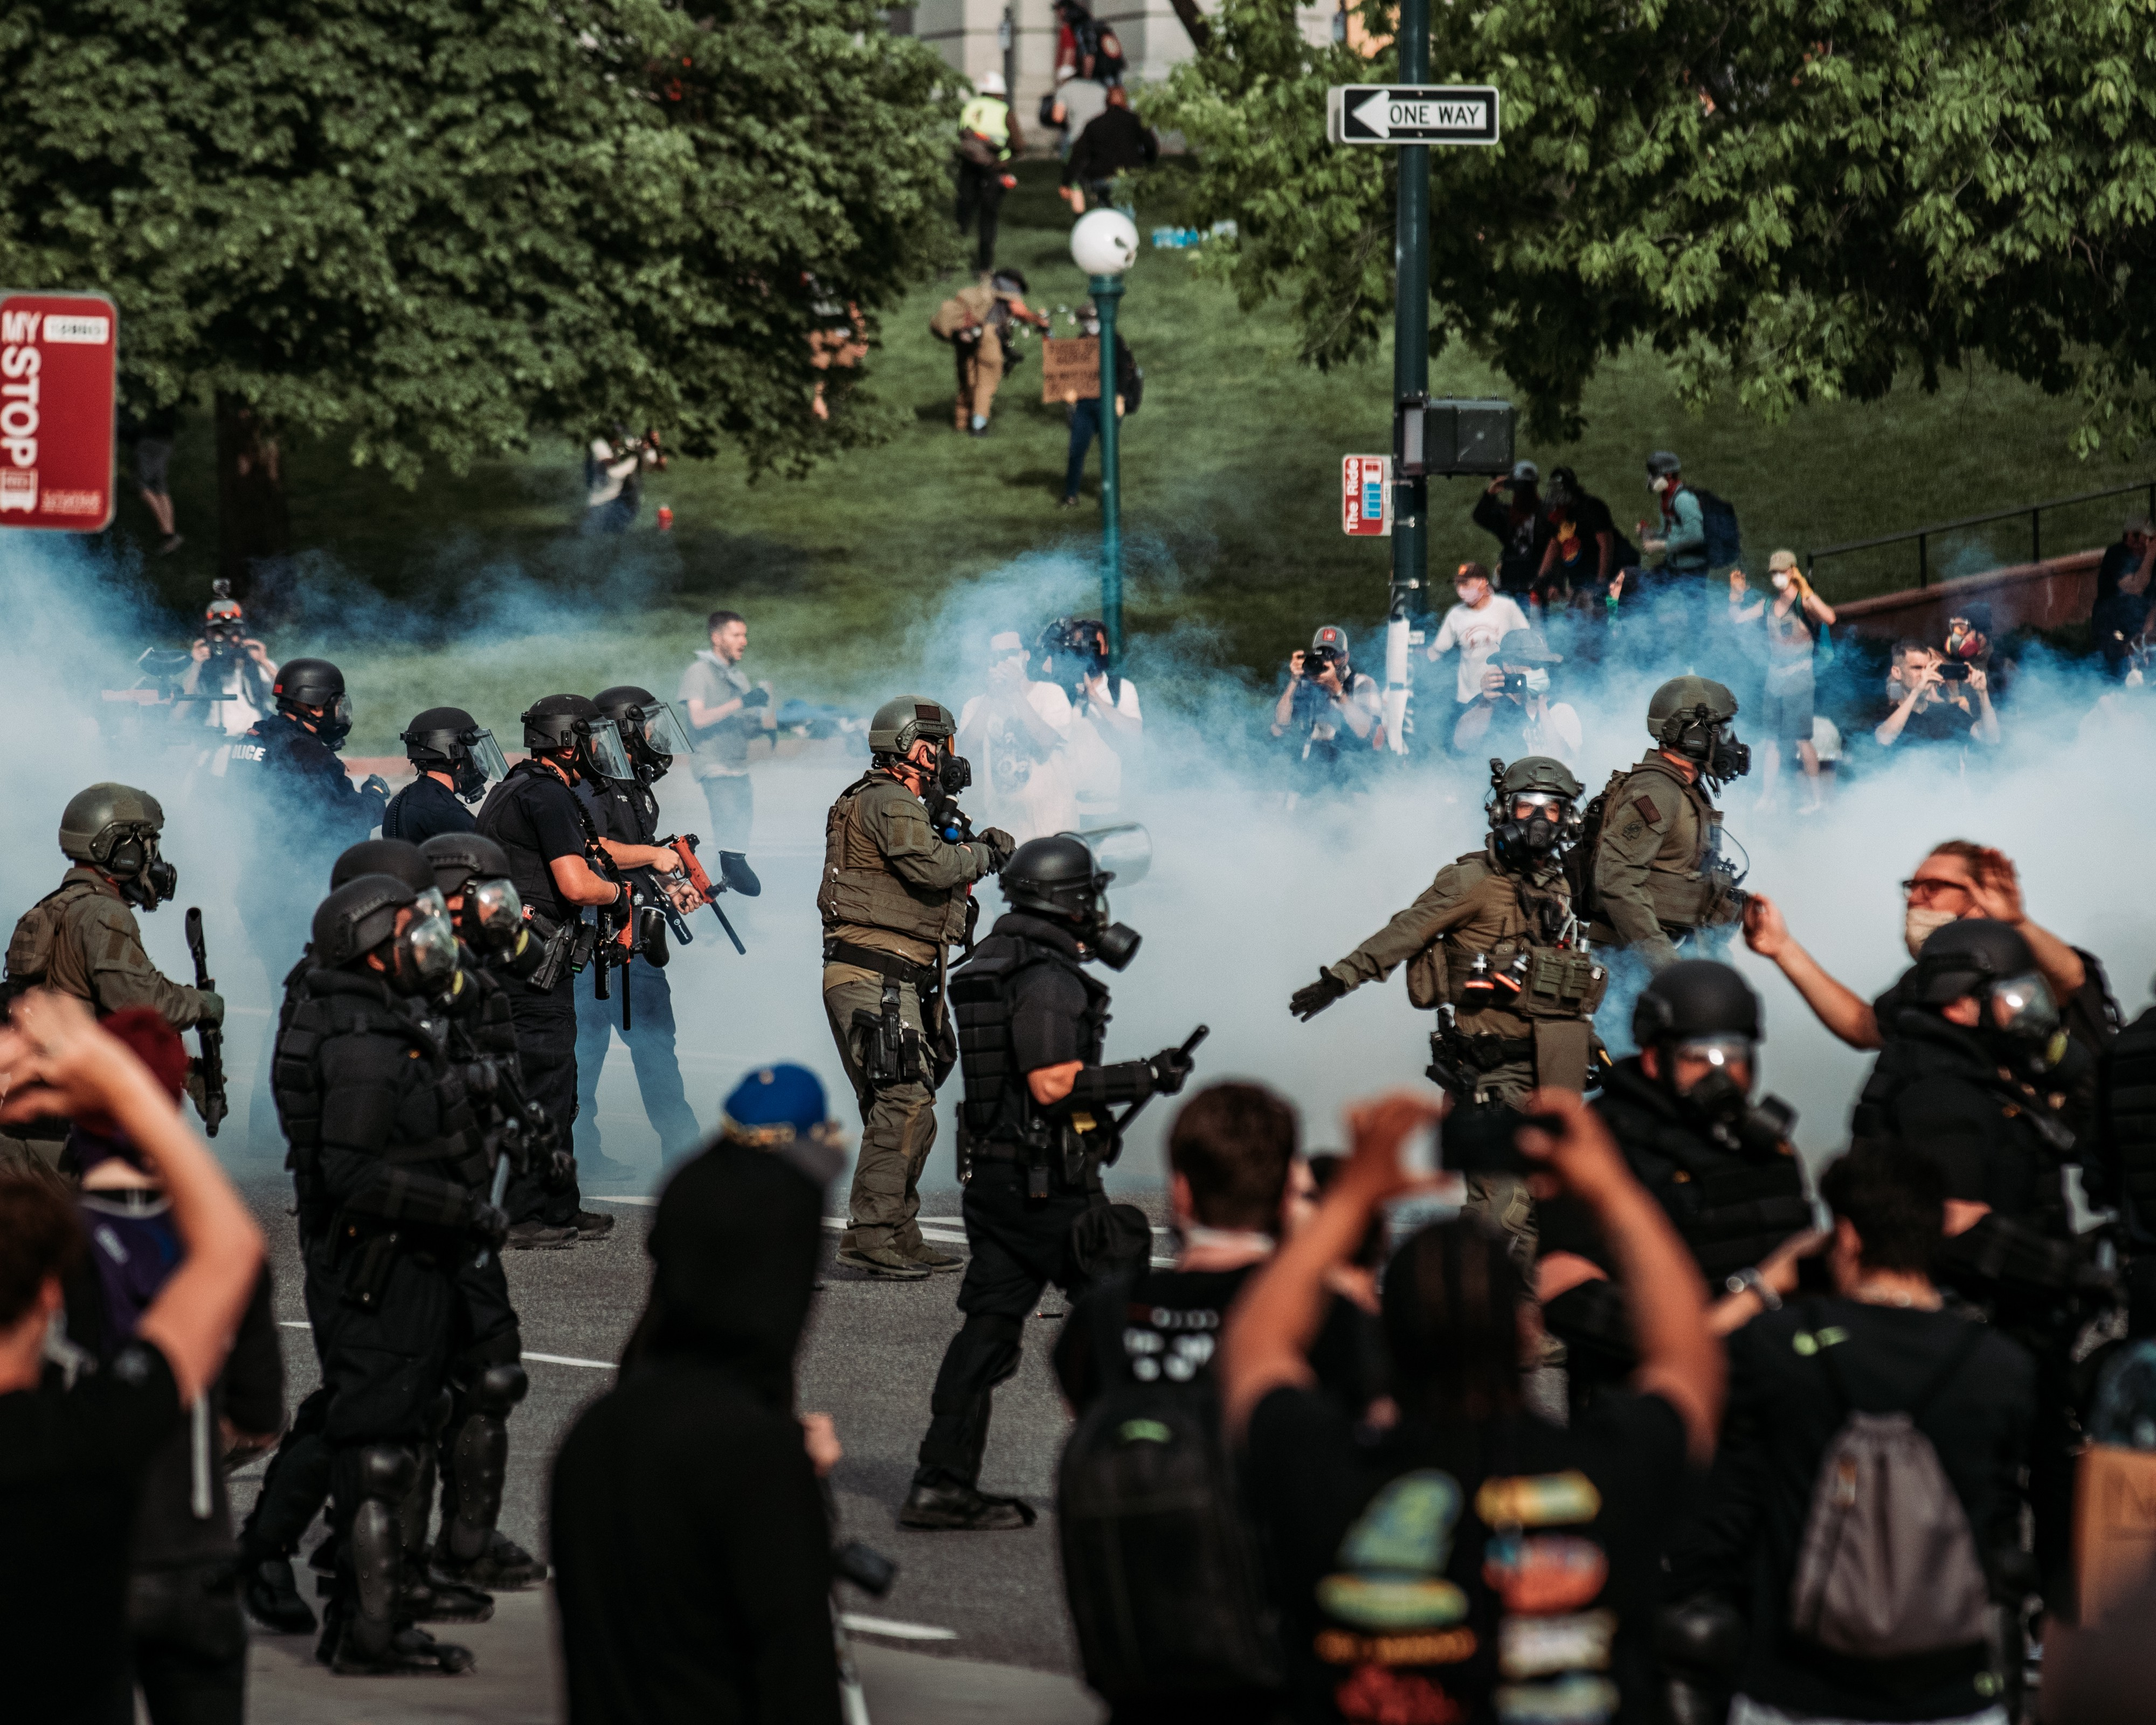 Image of riot police in a crowd with smoke bombs